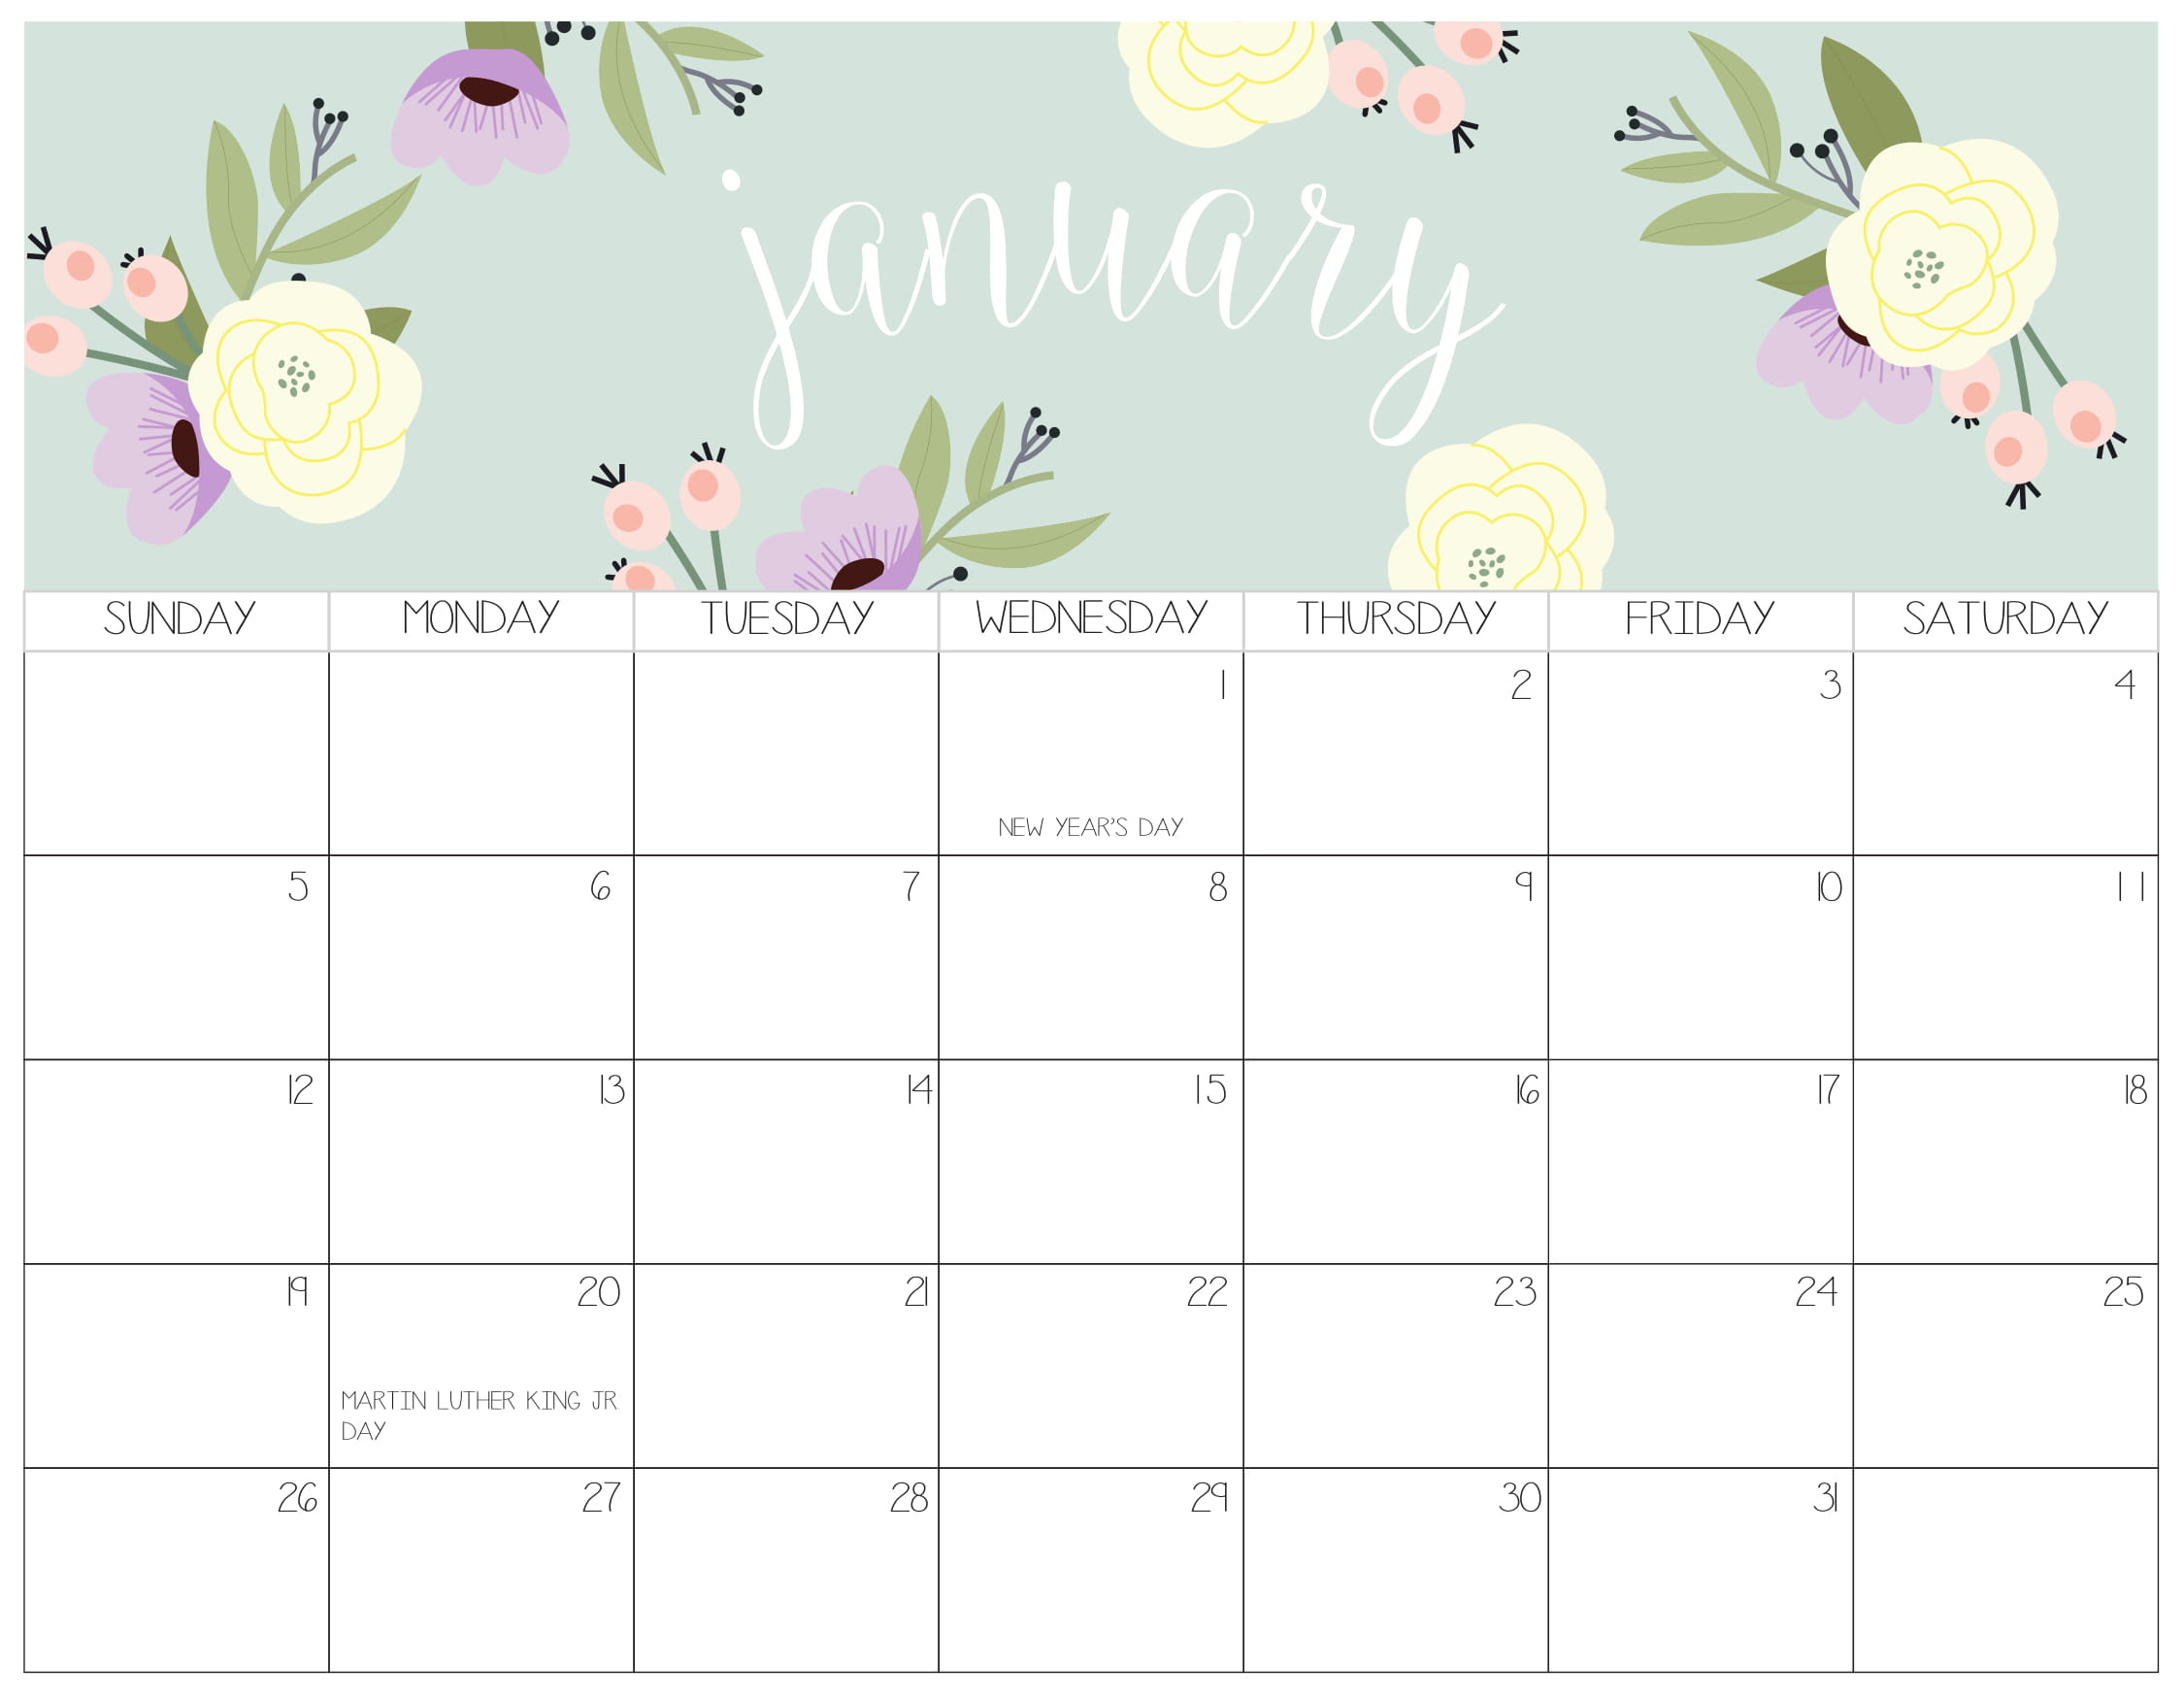 Cute January 2020 Calendar For Kids   2019 Calendars for Students 2250x1750